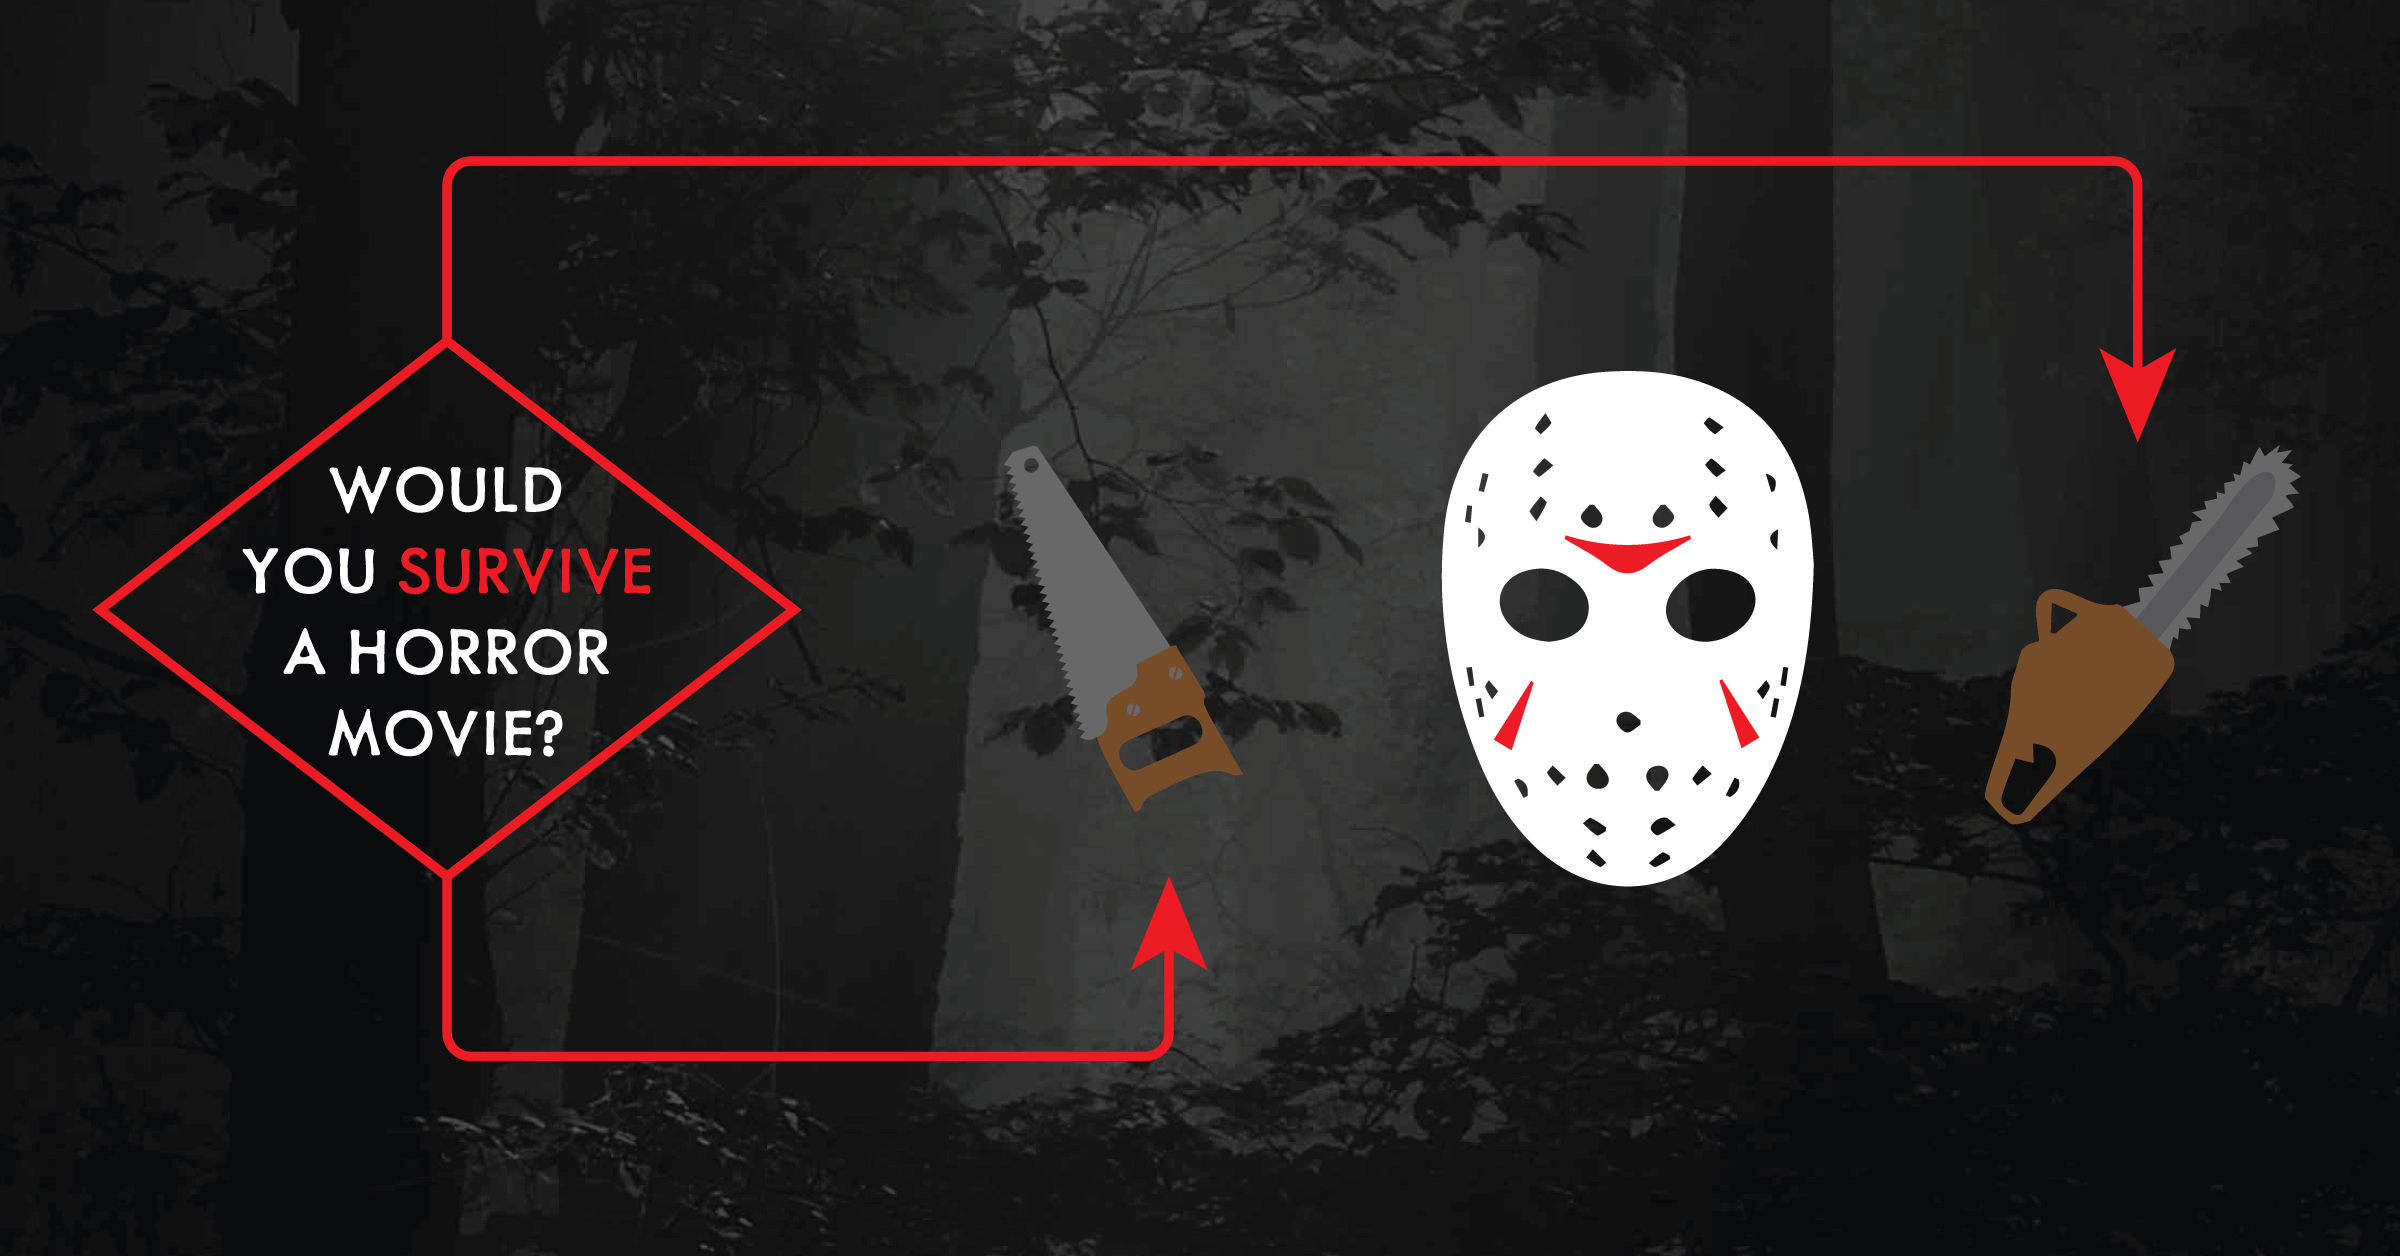 Would You Survive a Horror Movie? [Flowchart]